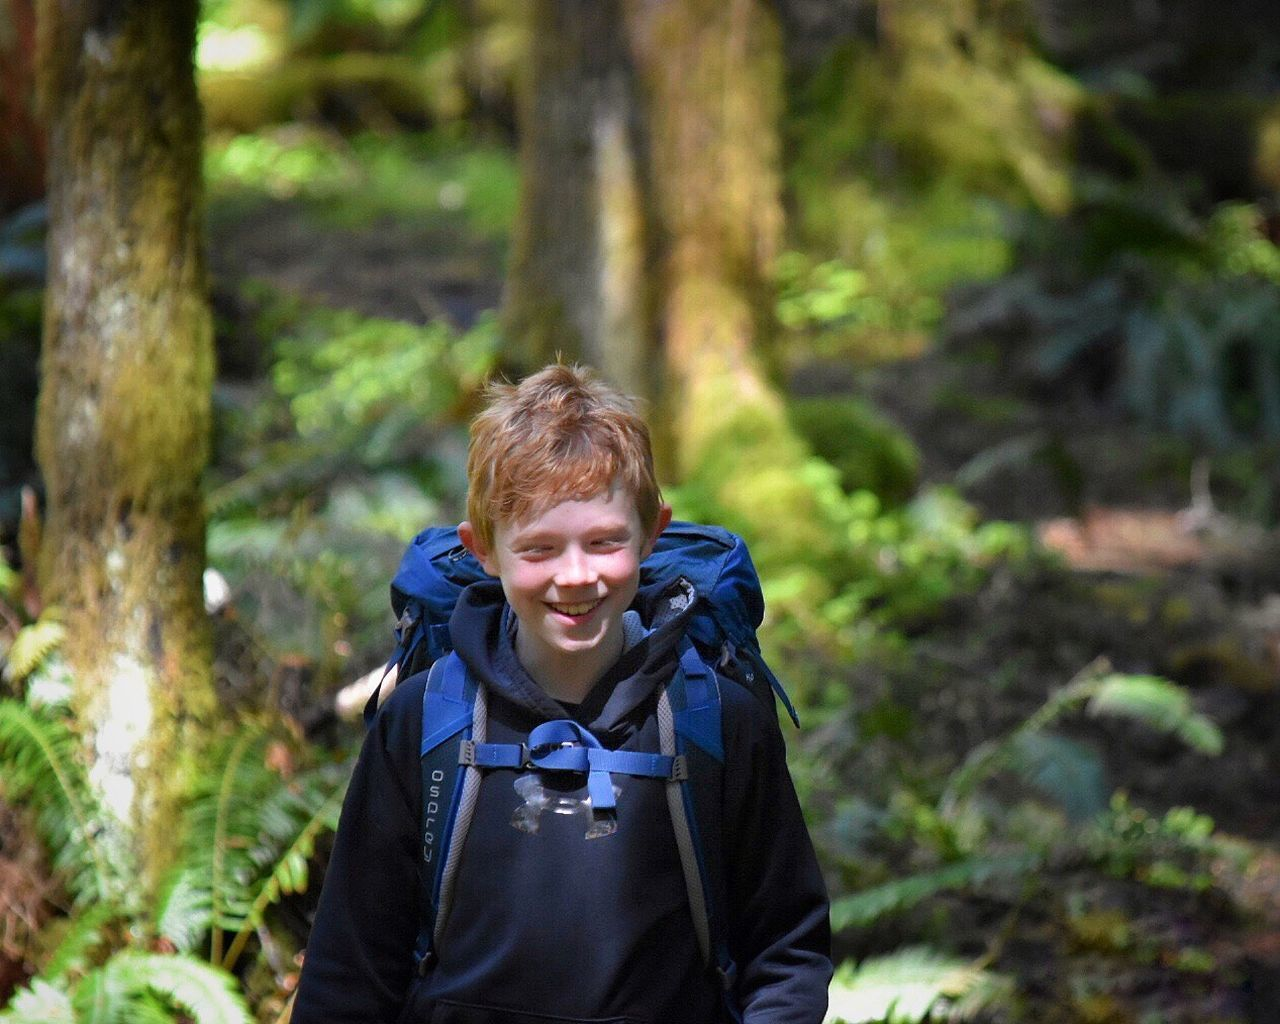 Forest Backpack Real People Leisure Activity One Person Hiking Adventure Tree Front View Nature Walking Focus On Foreground Exploration Childhood Looking At Camera Day Outdoors Lifestyles Boys Portrait Backpacker Hikingadventures Hiking Backpacking Casual Clothing